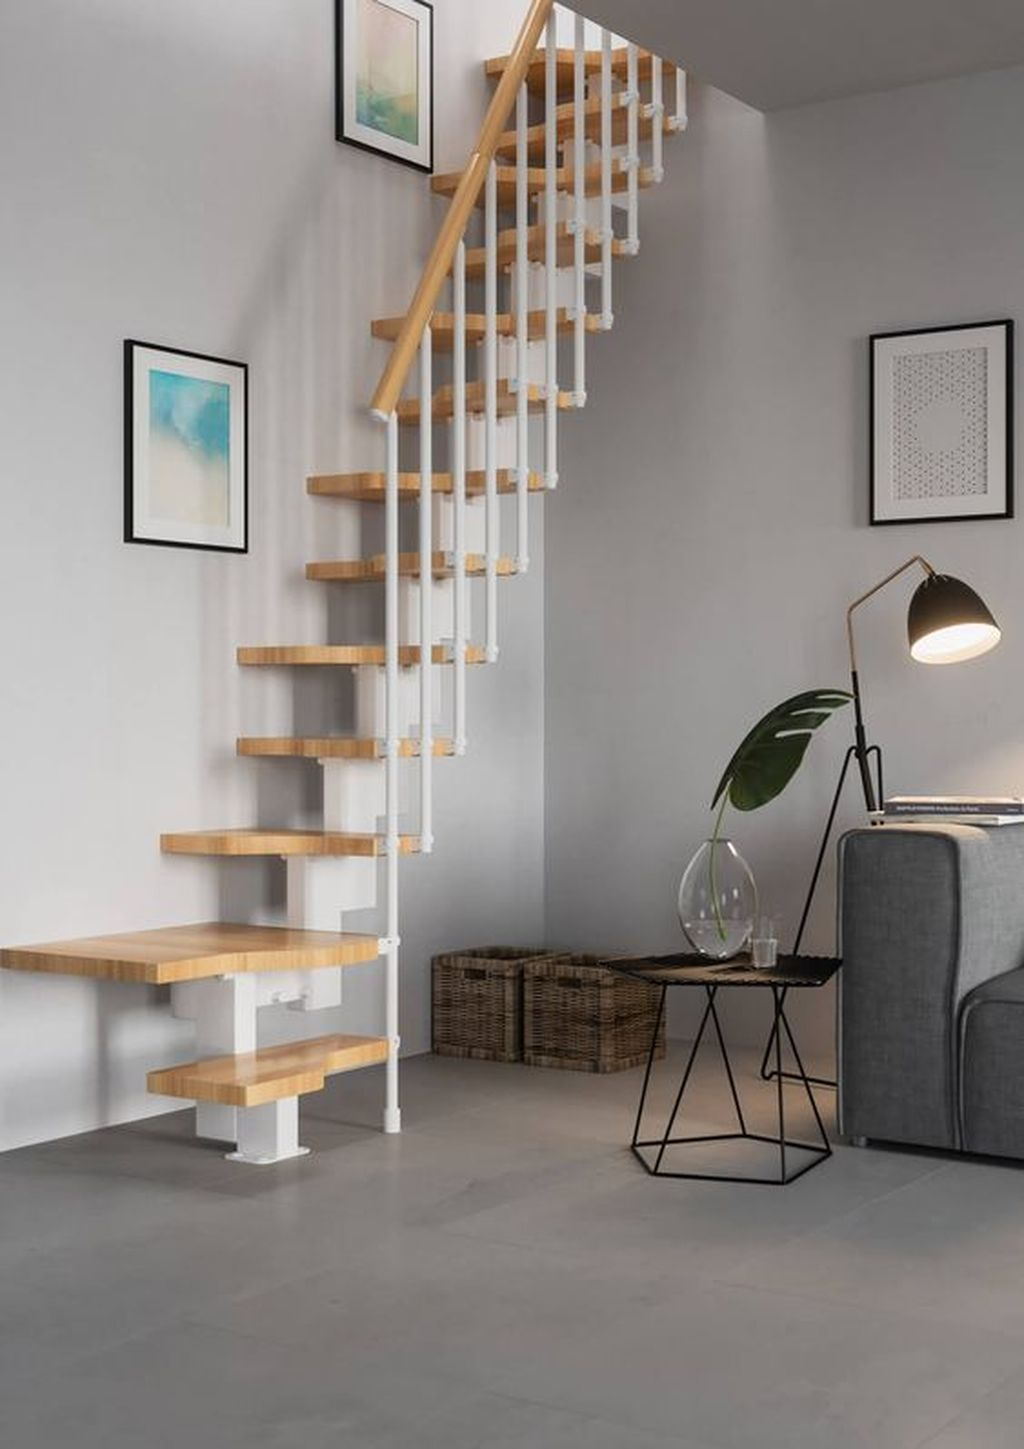 Lighting Basement Washroom Stairs: 32 Stunning Basement Remodel Ideas Into An Attractive